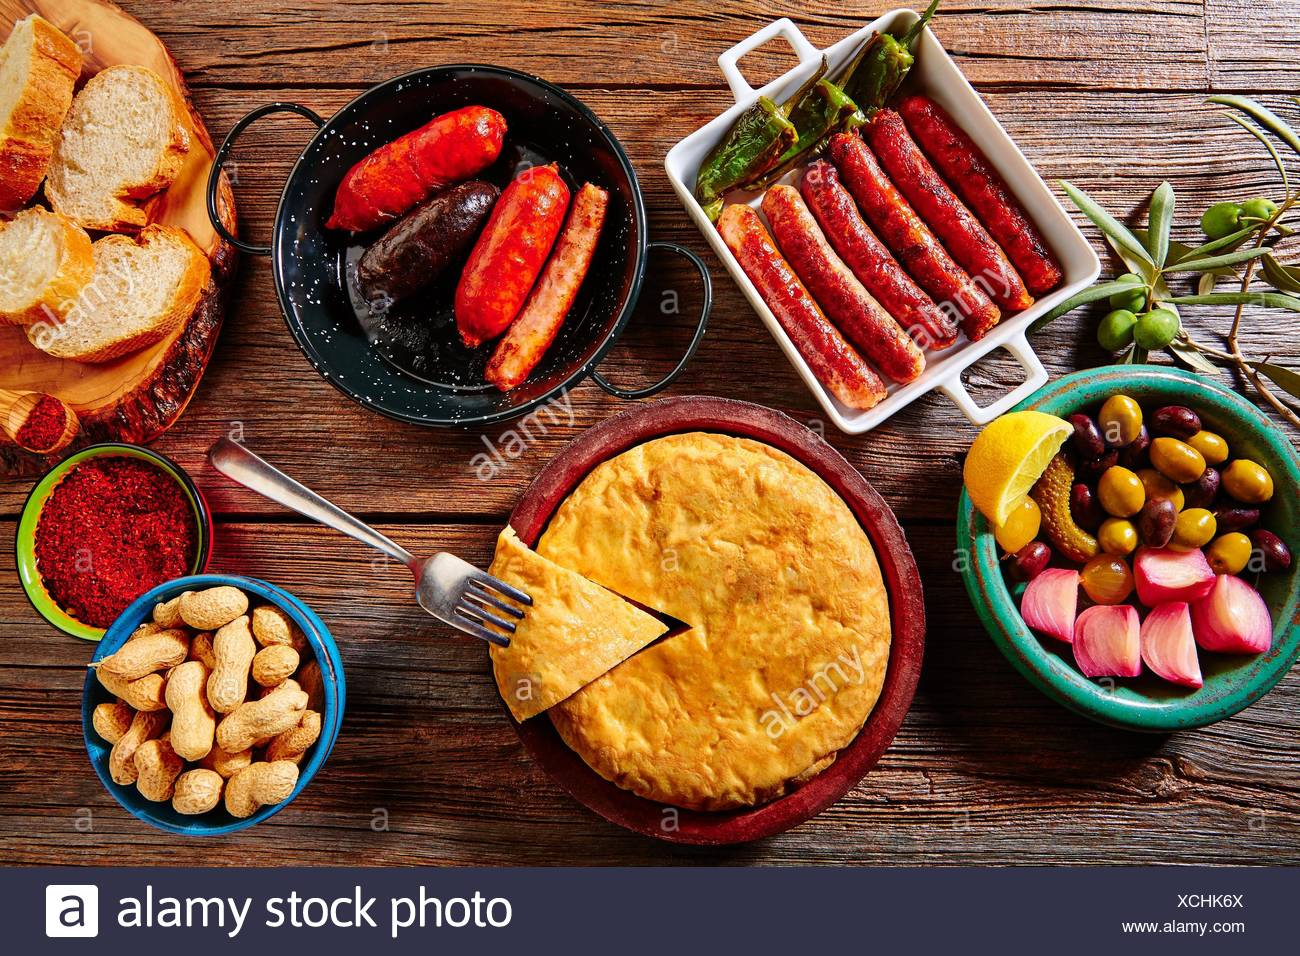 Tapas mix spanish potatoes omelette sausage olives bread and paprika. - Stock Image